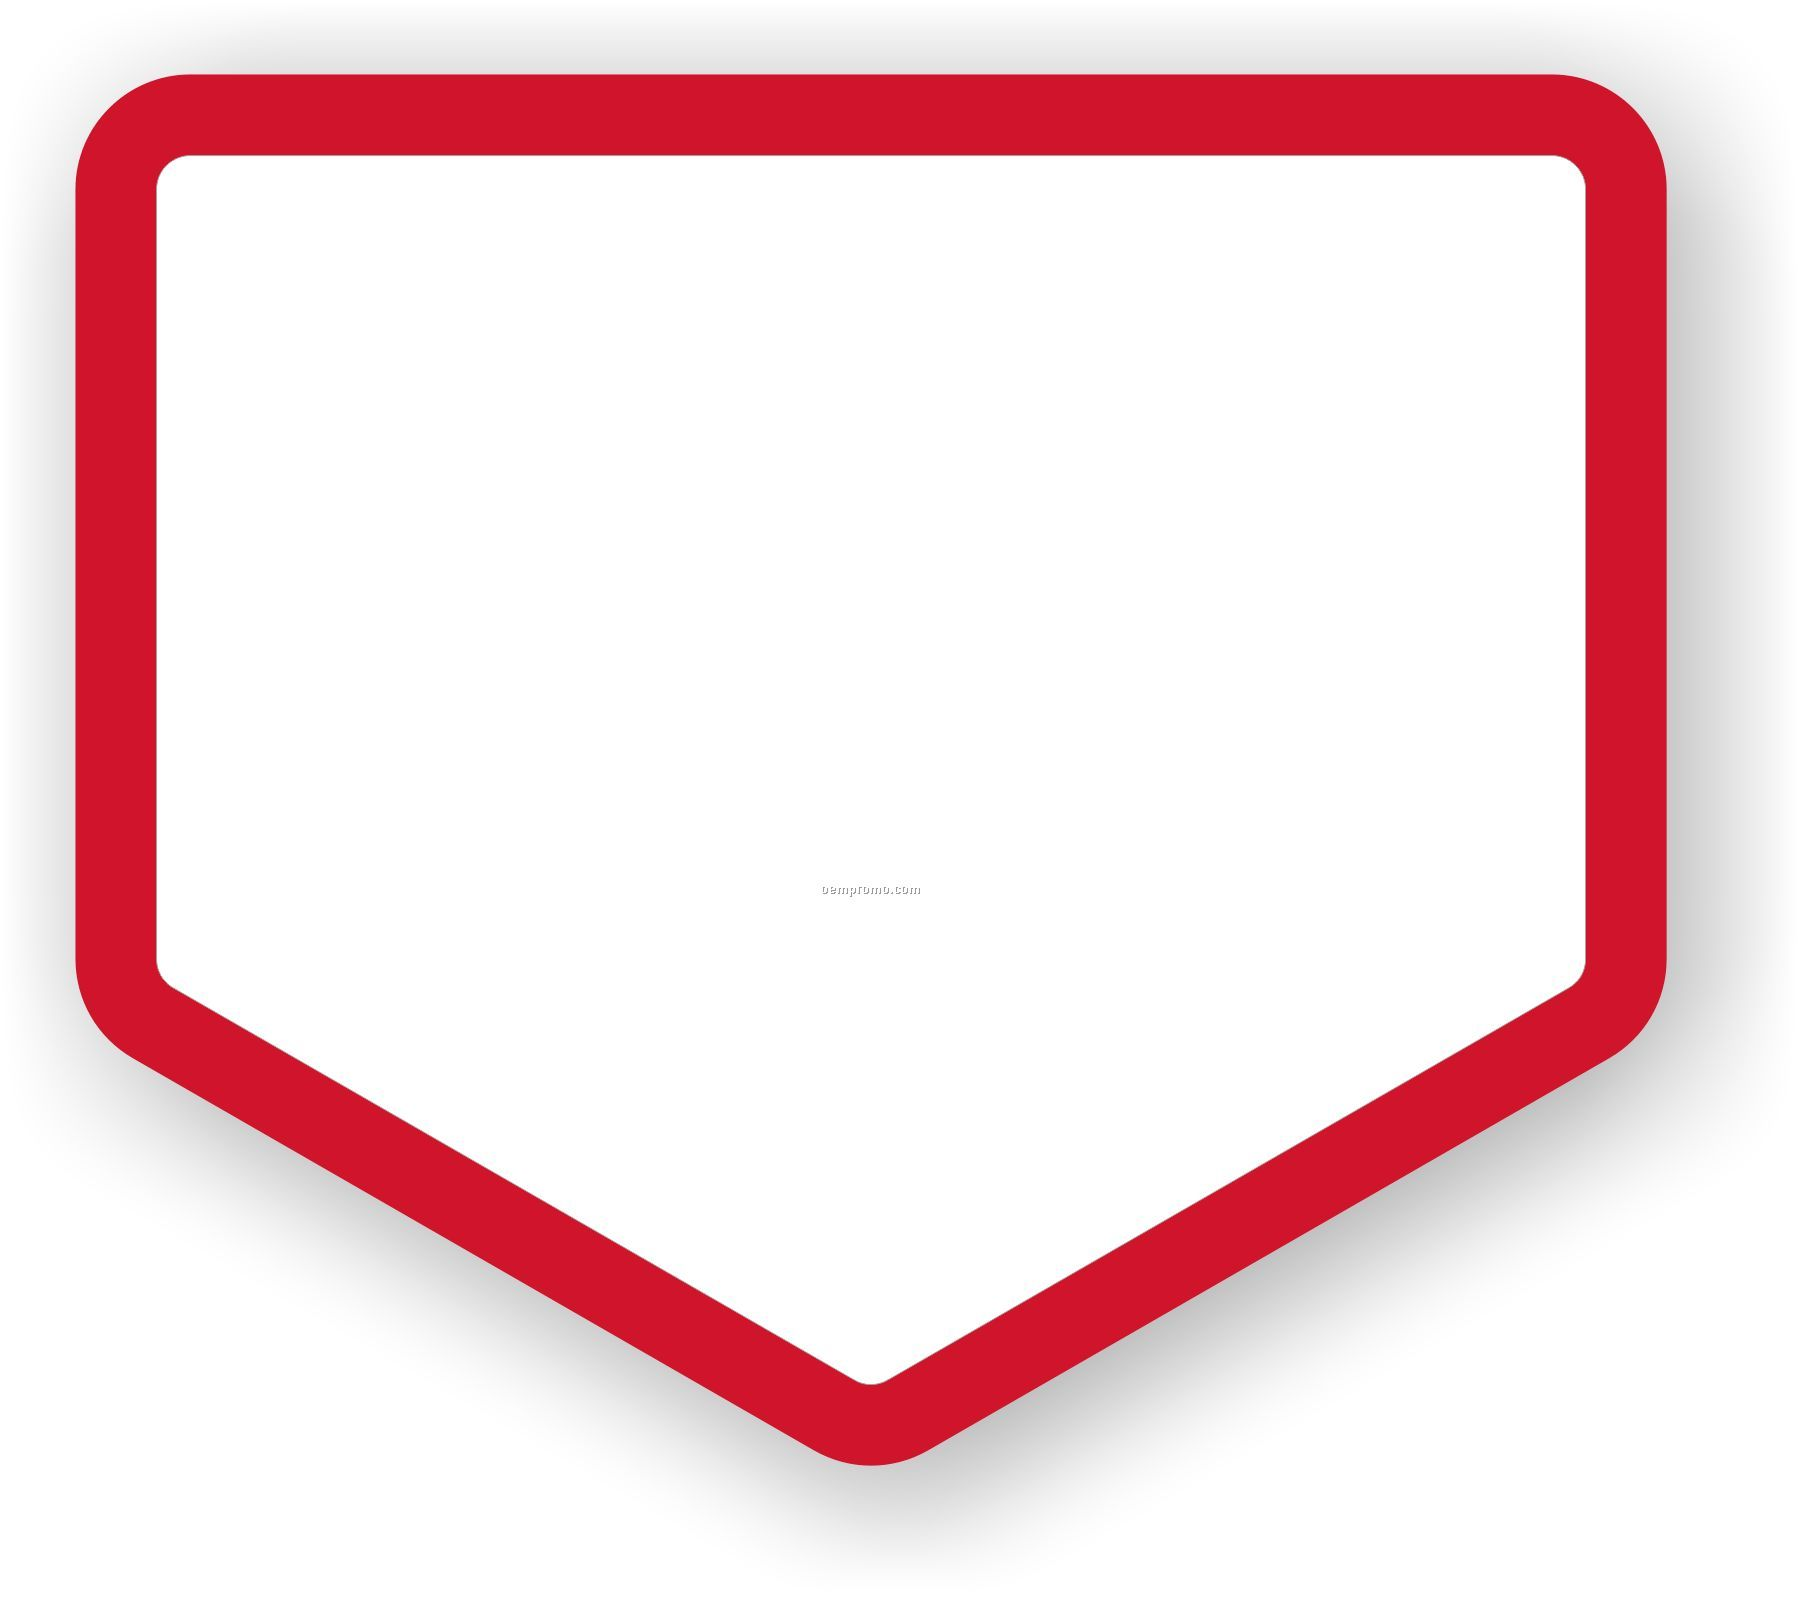 Free Home Plate Cliparts, Download Free Clip Art, Free Clip Art on.